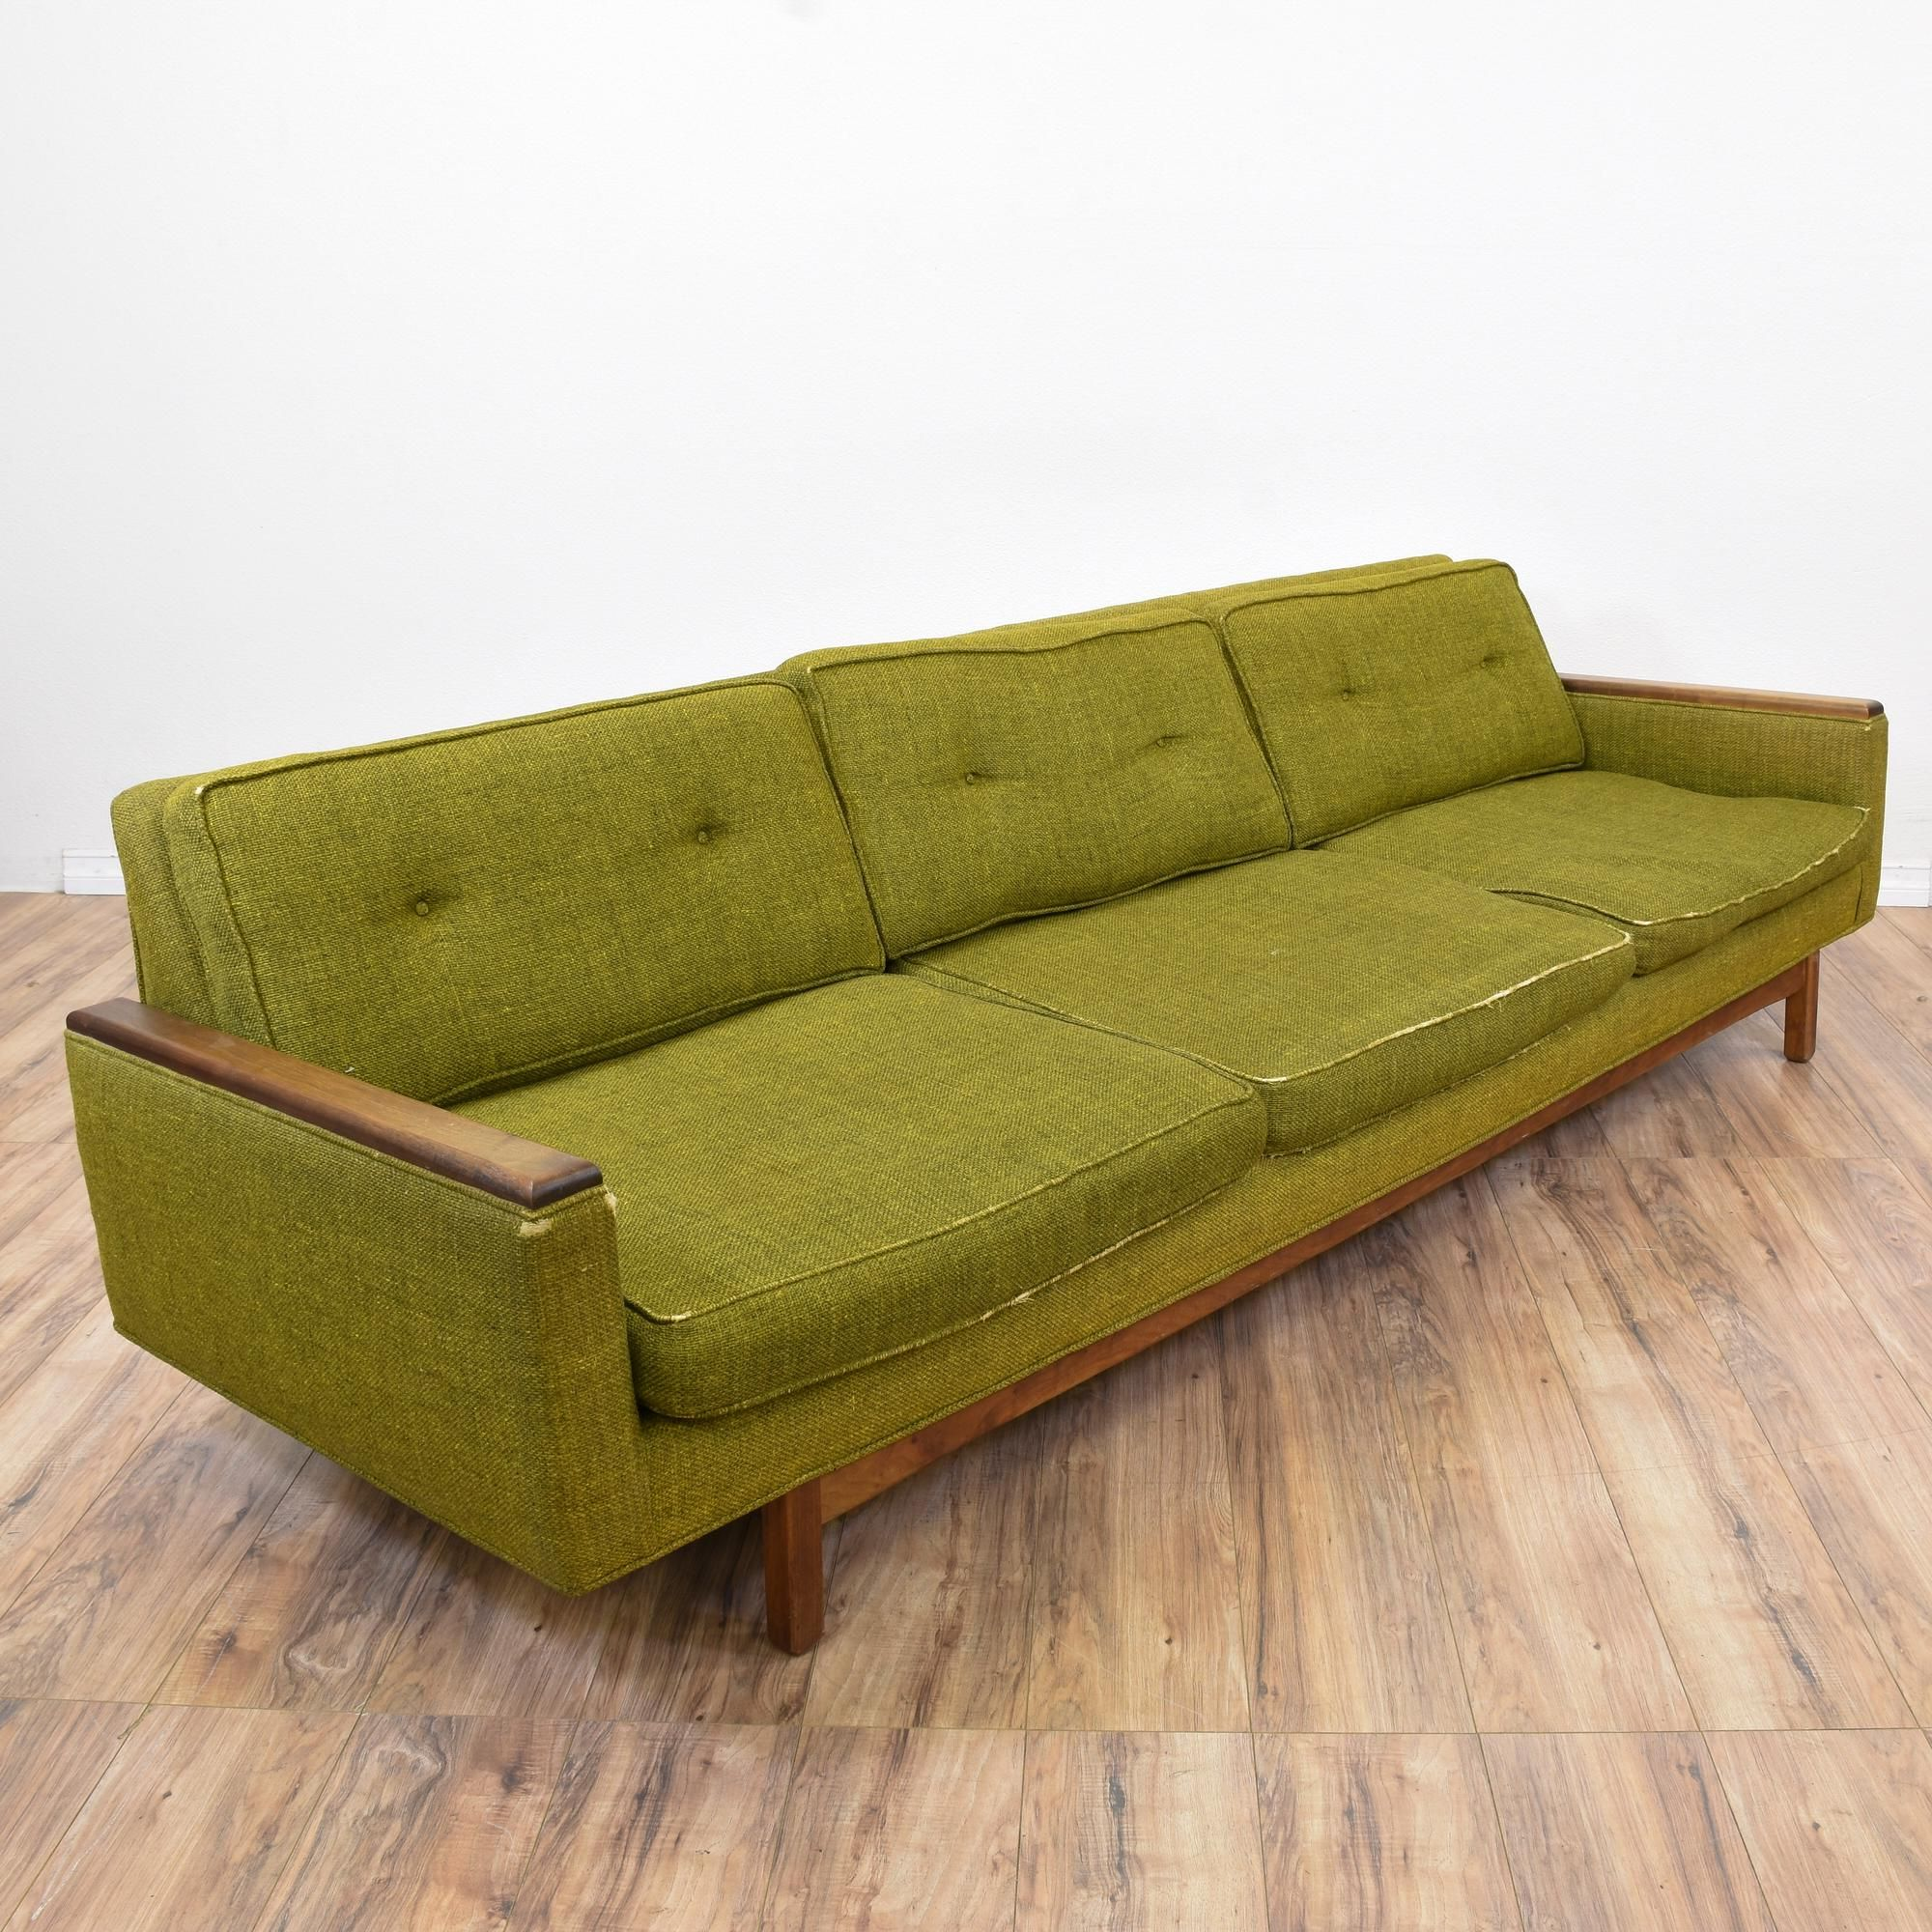 Modern Low Back Sofas Black Leather Sofa Seat Covers This Mid Century Is Upholstered In A Durable